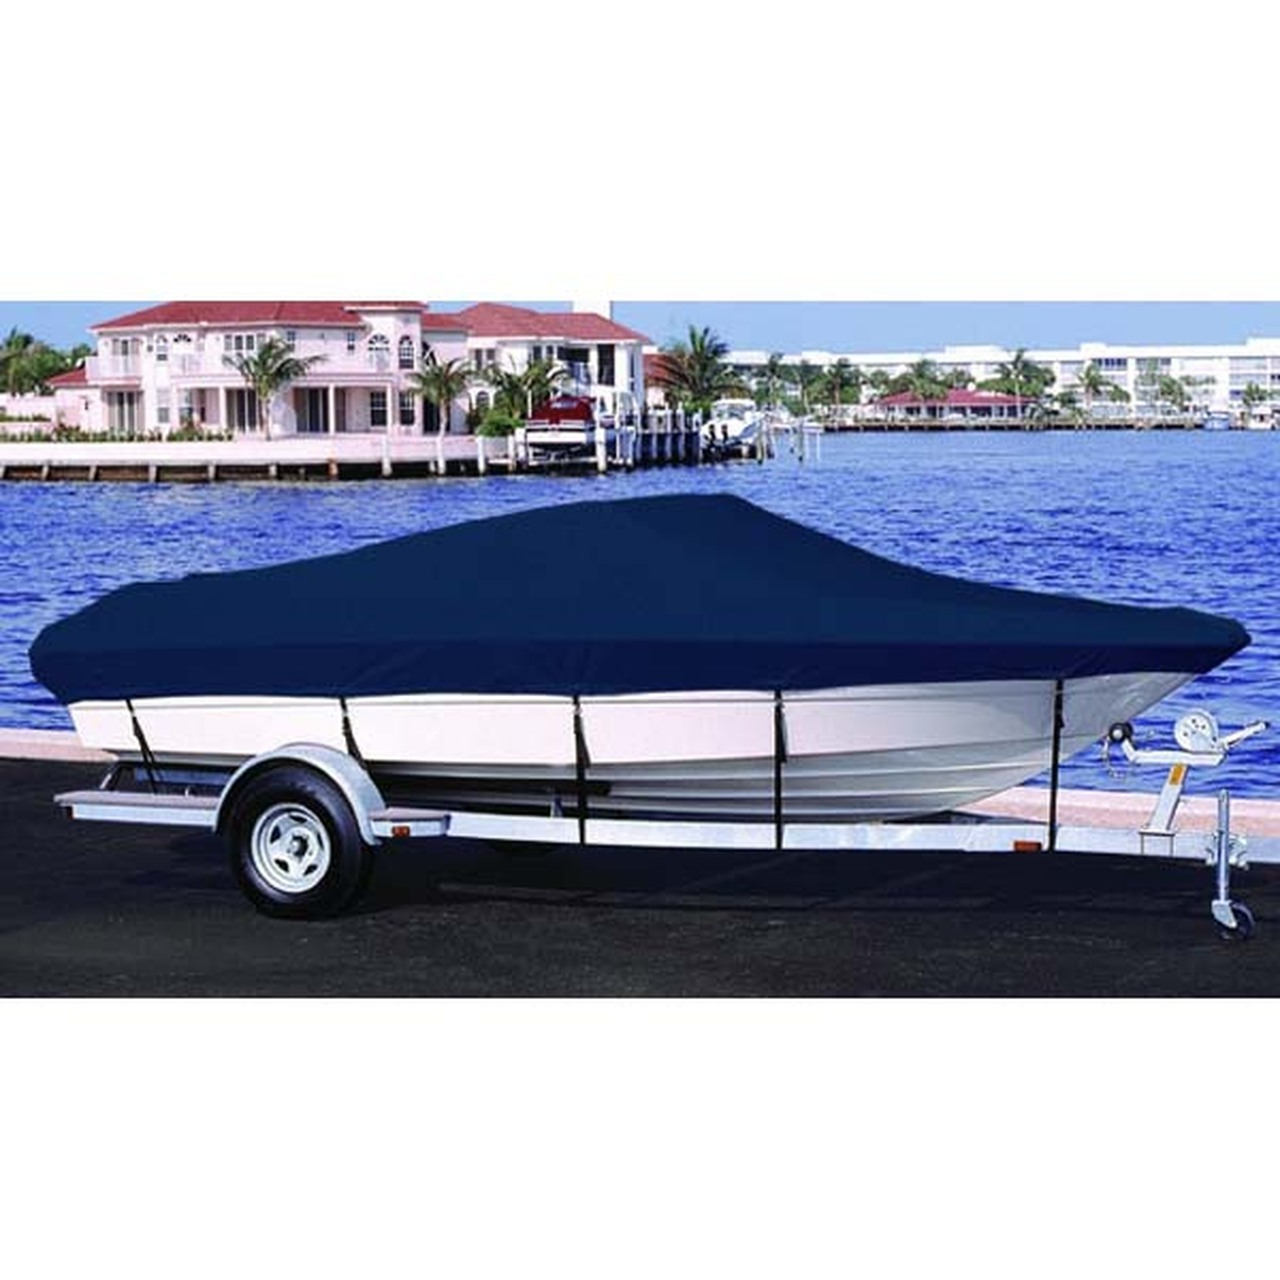 Fine Bayliner Capri 1700 Bowrider Outboard Boat Cover 1987 1989 Caraccident5 Cool Chair Designs And Ideas Caraccident5Info